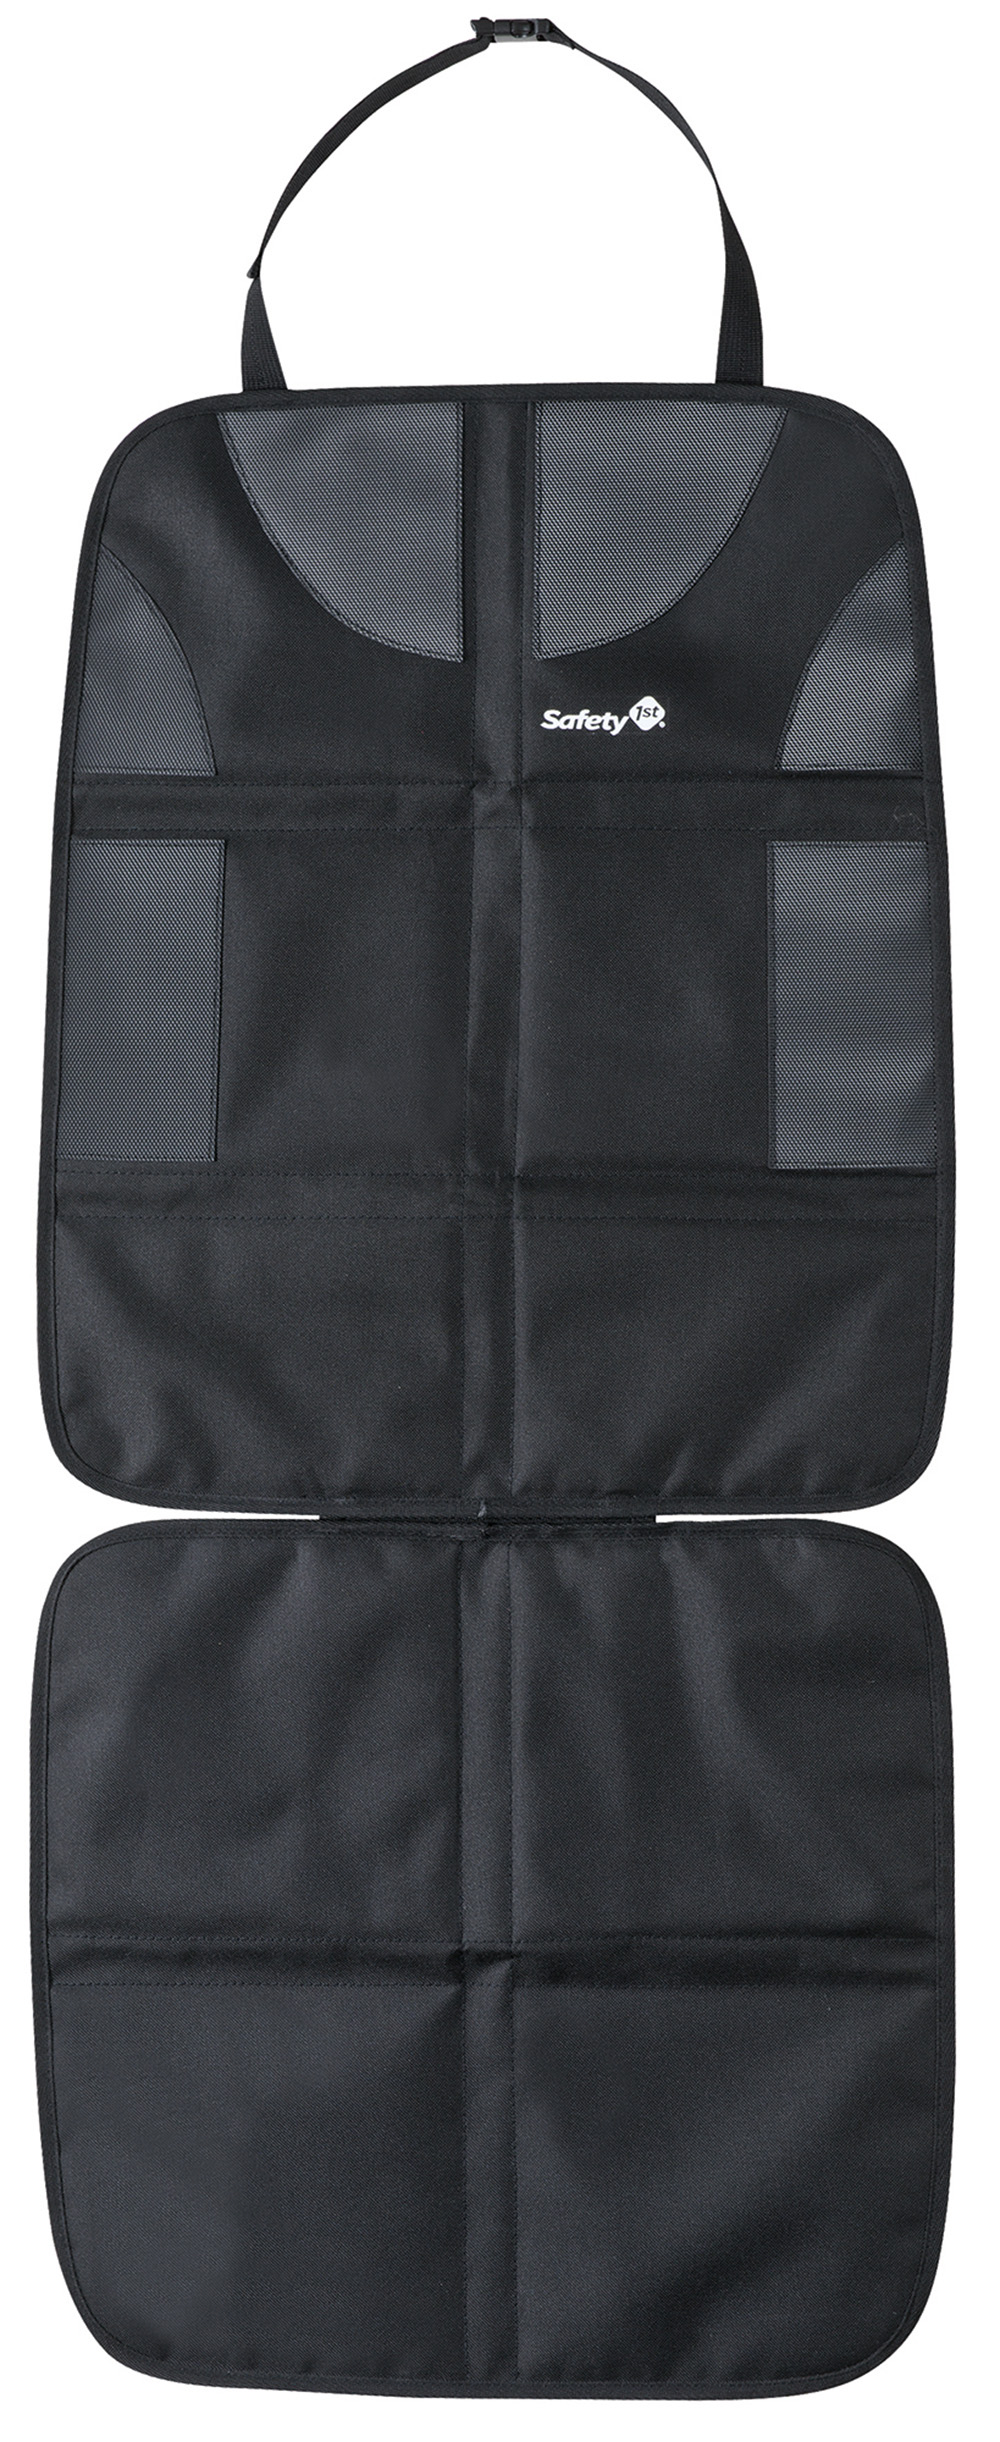 Safety 1st Car Seat Protector - Buy at